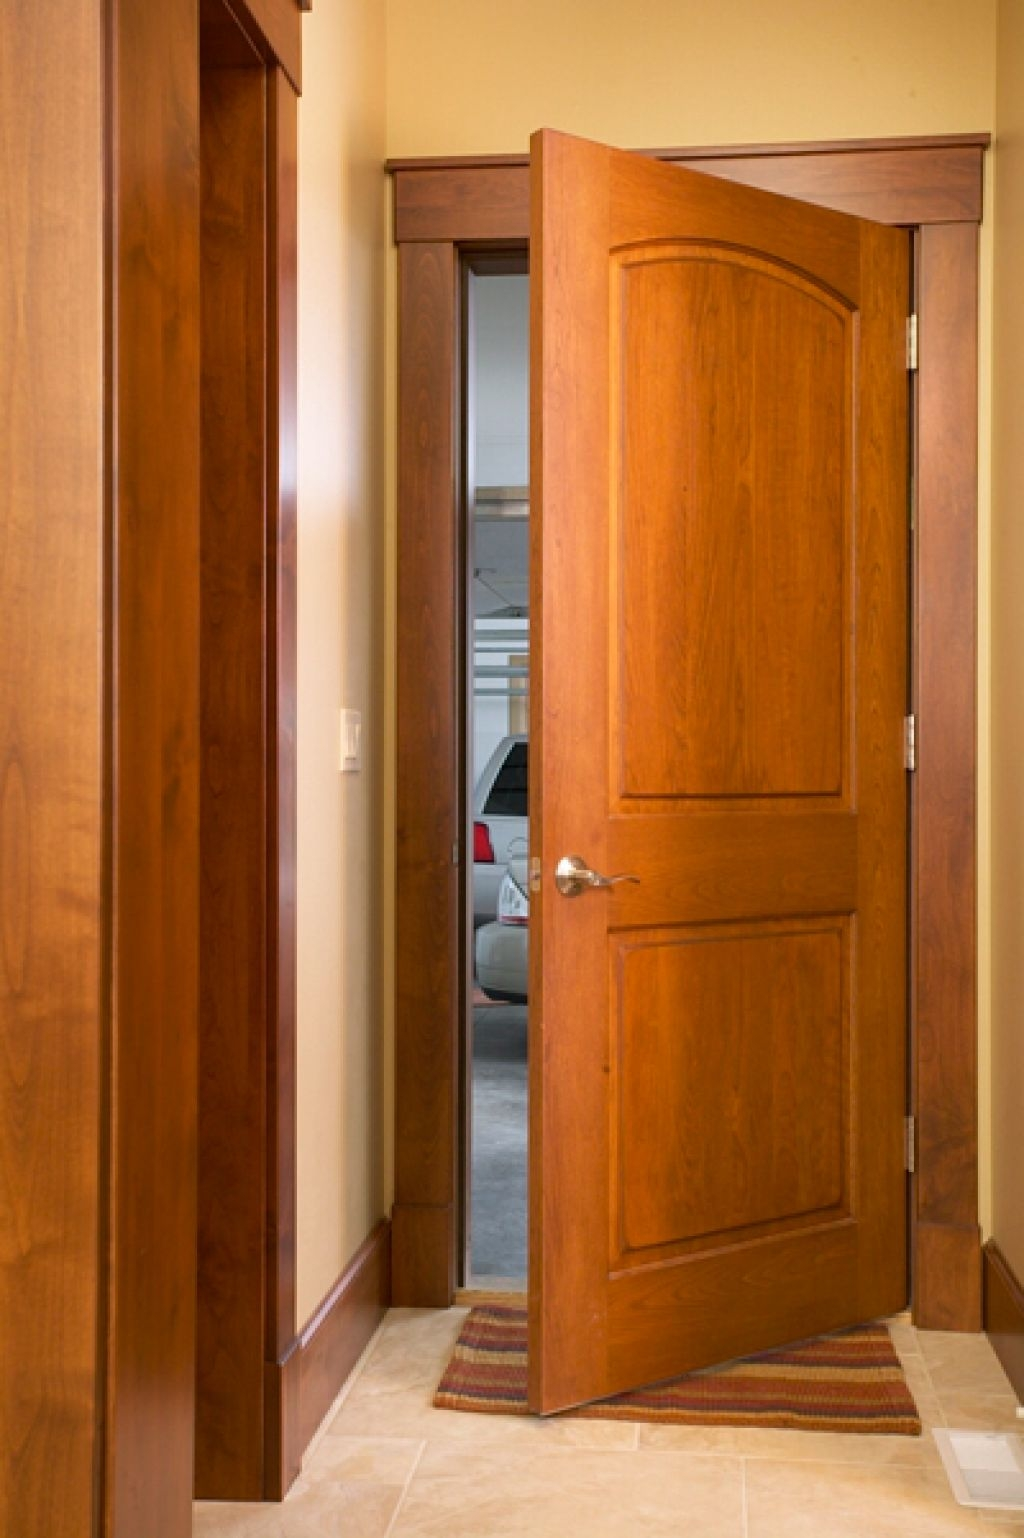 Common Design Interior Doors Fire Rated With Arched Top Panel And intended for sizing 1024 X 1538